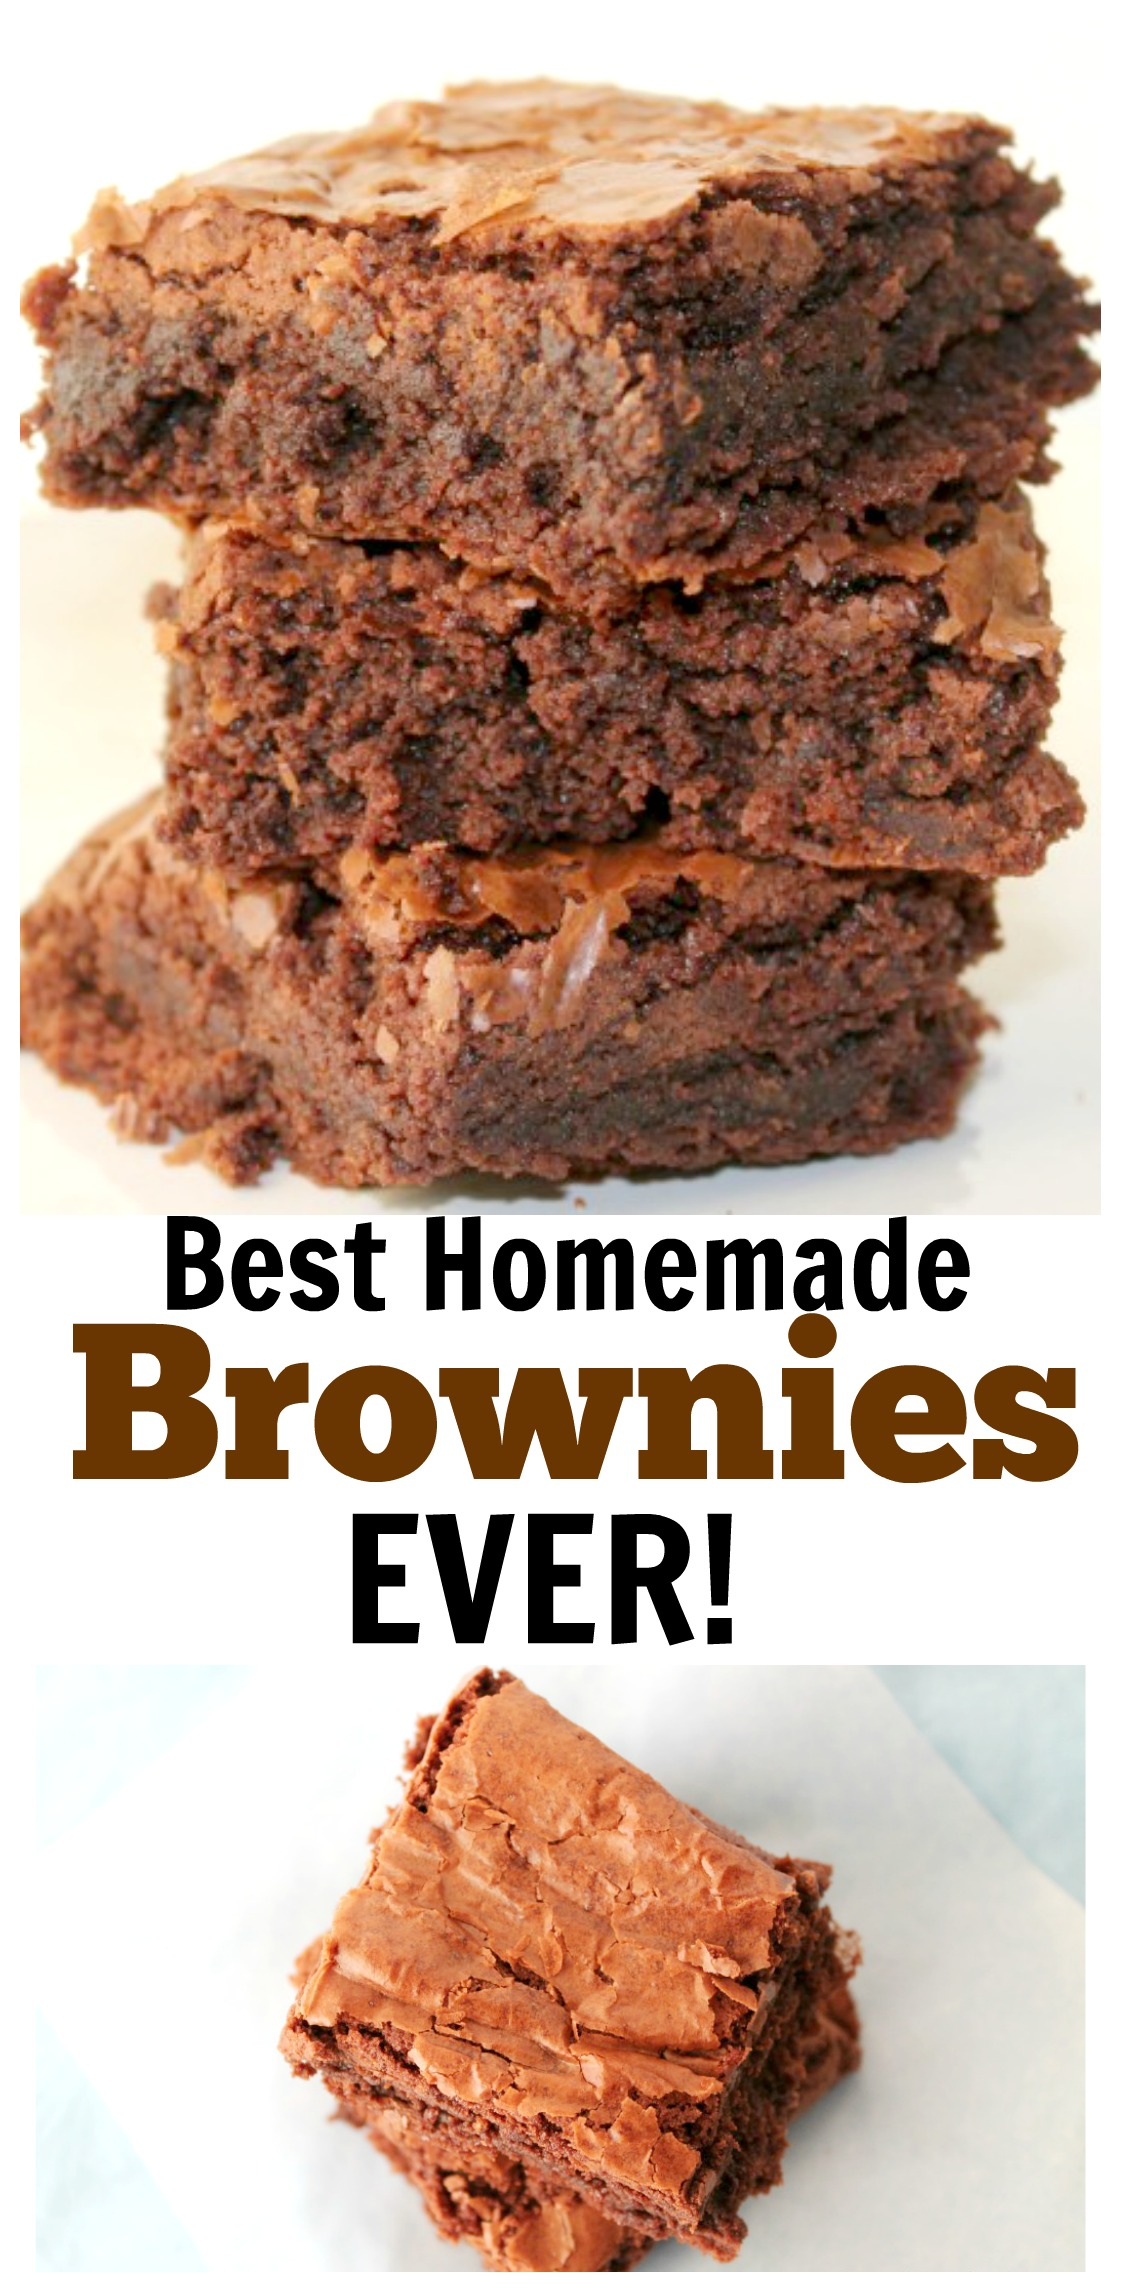 The Best Homemade Brownies Ever! These made from scratch brownies are super easy to make and taste so much better than the box mix. They are super chocolatey and fudgey.